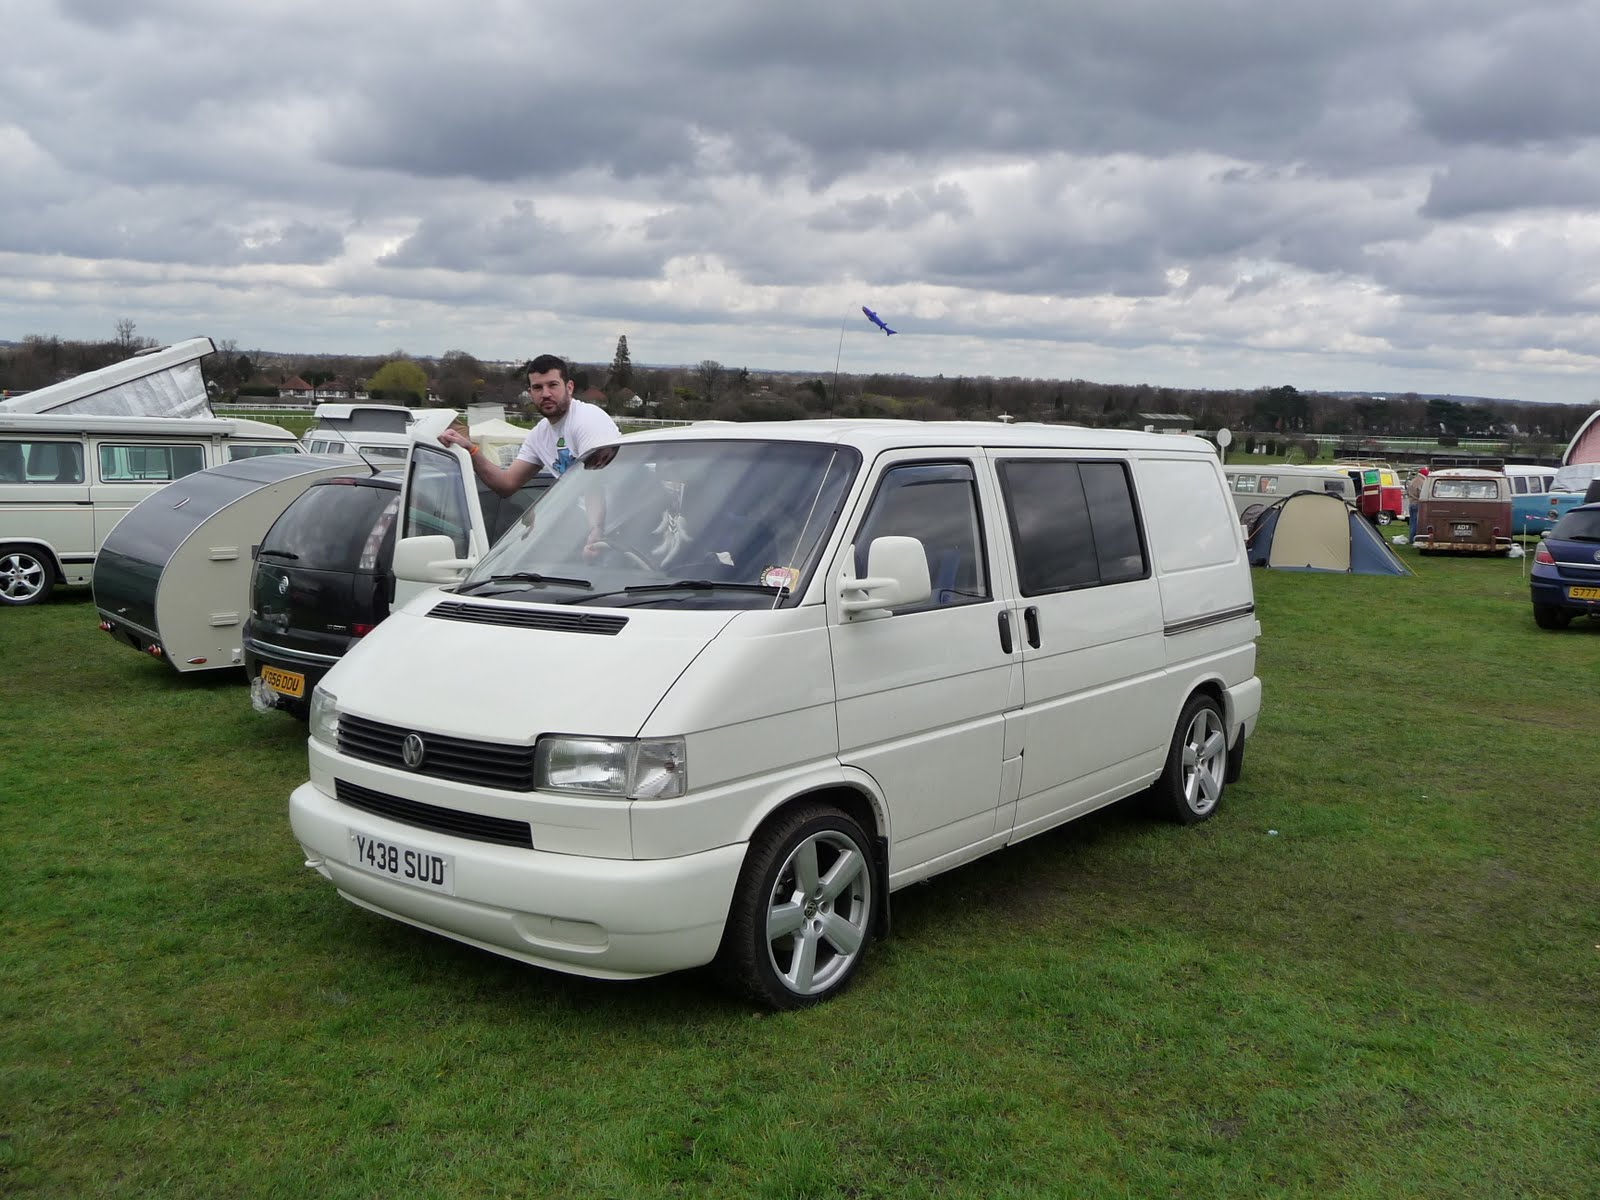 for sale white 2001 volkswagen transporter t4 1 9 td 1000. Black Bedroom Furniture Sets. Home Design Ideas